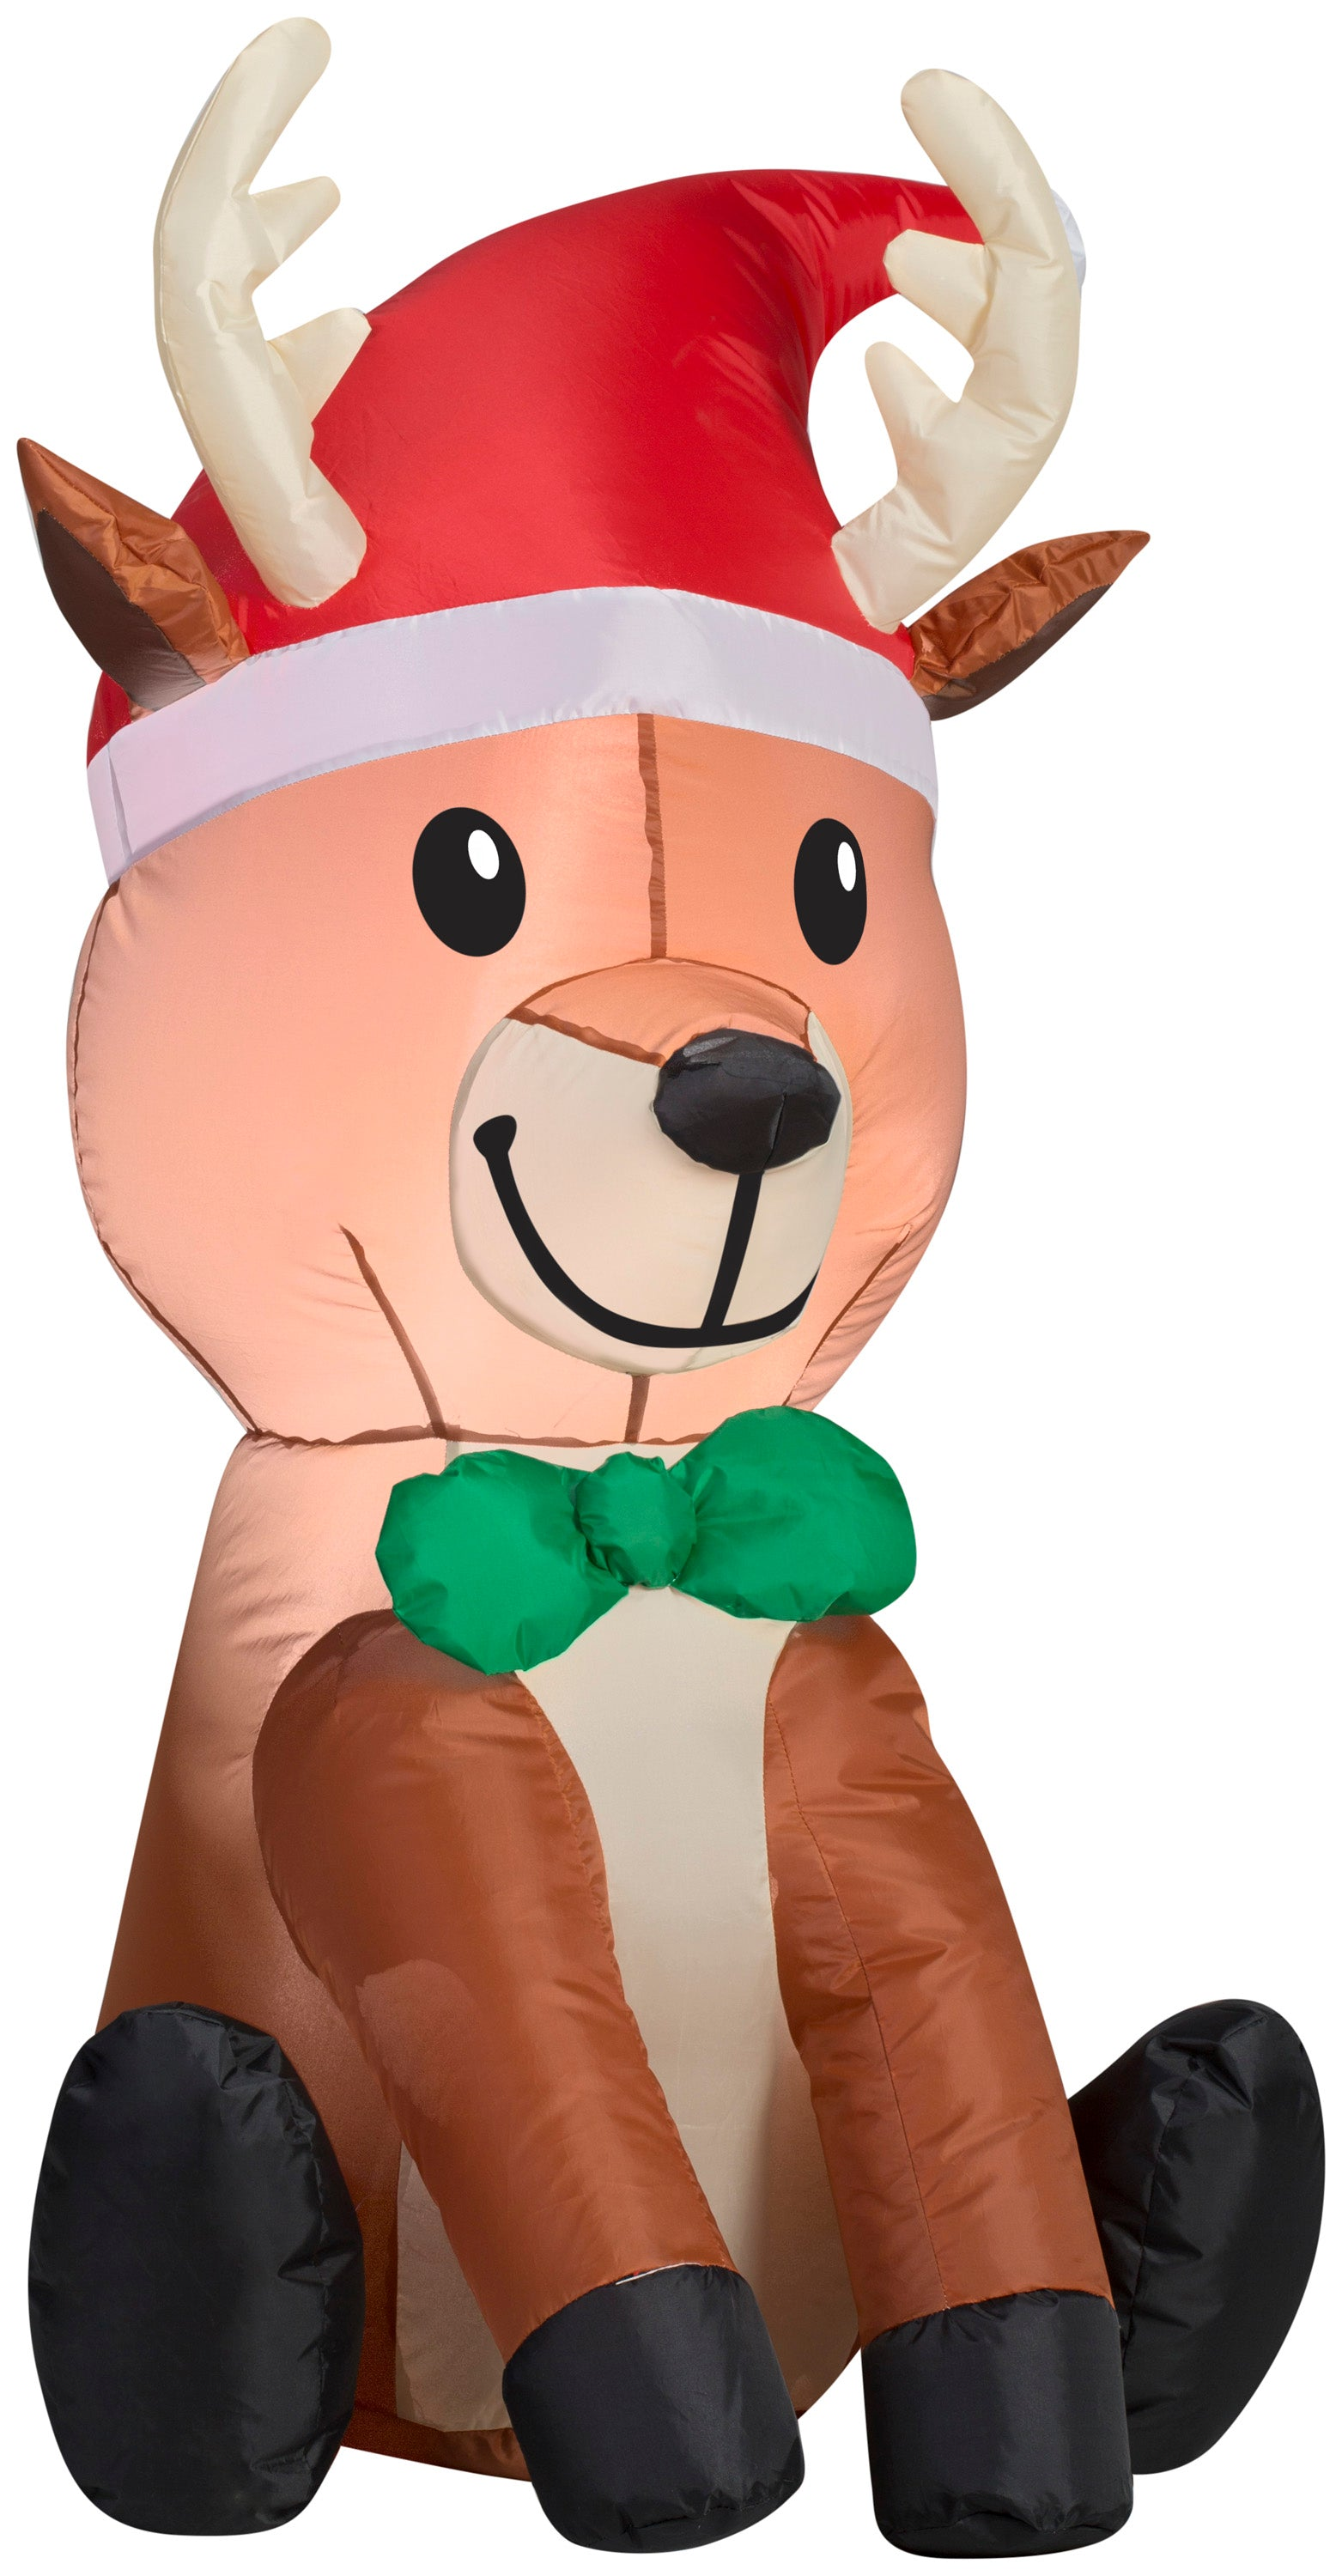 3.5' Airblown Outdoor Reindeer Christmas Inflatable